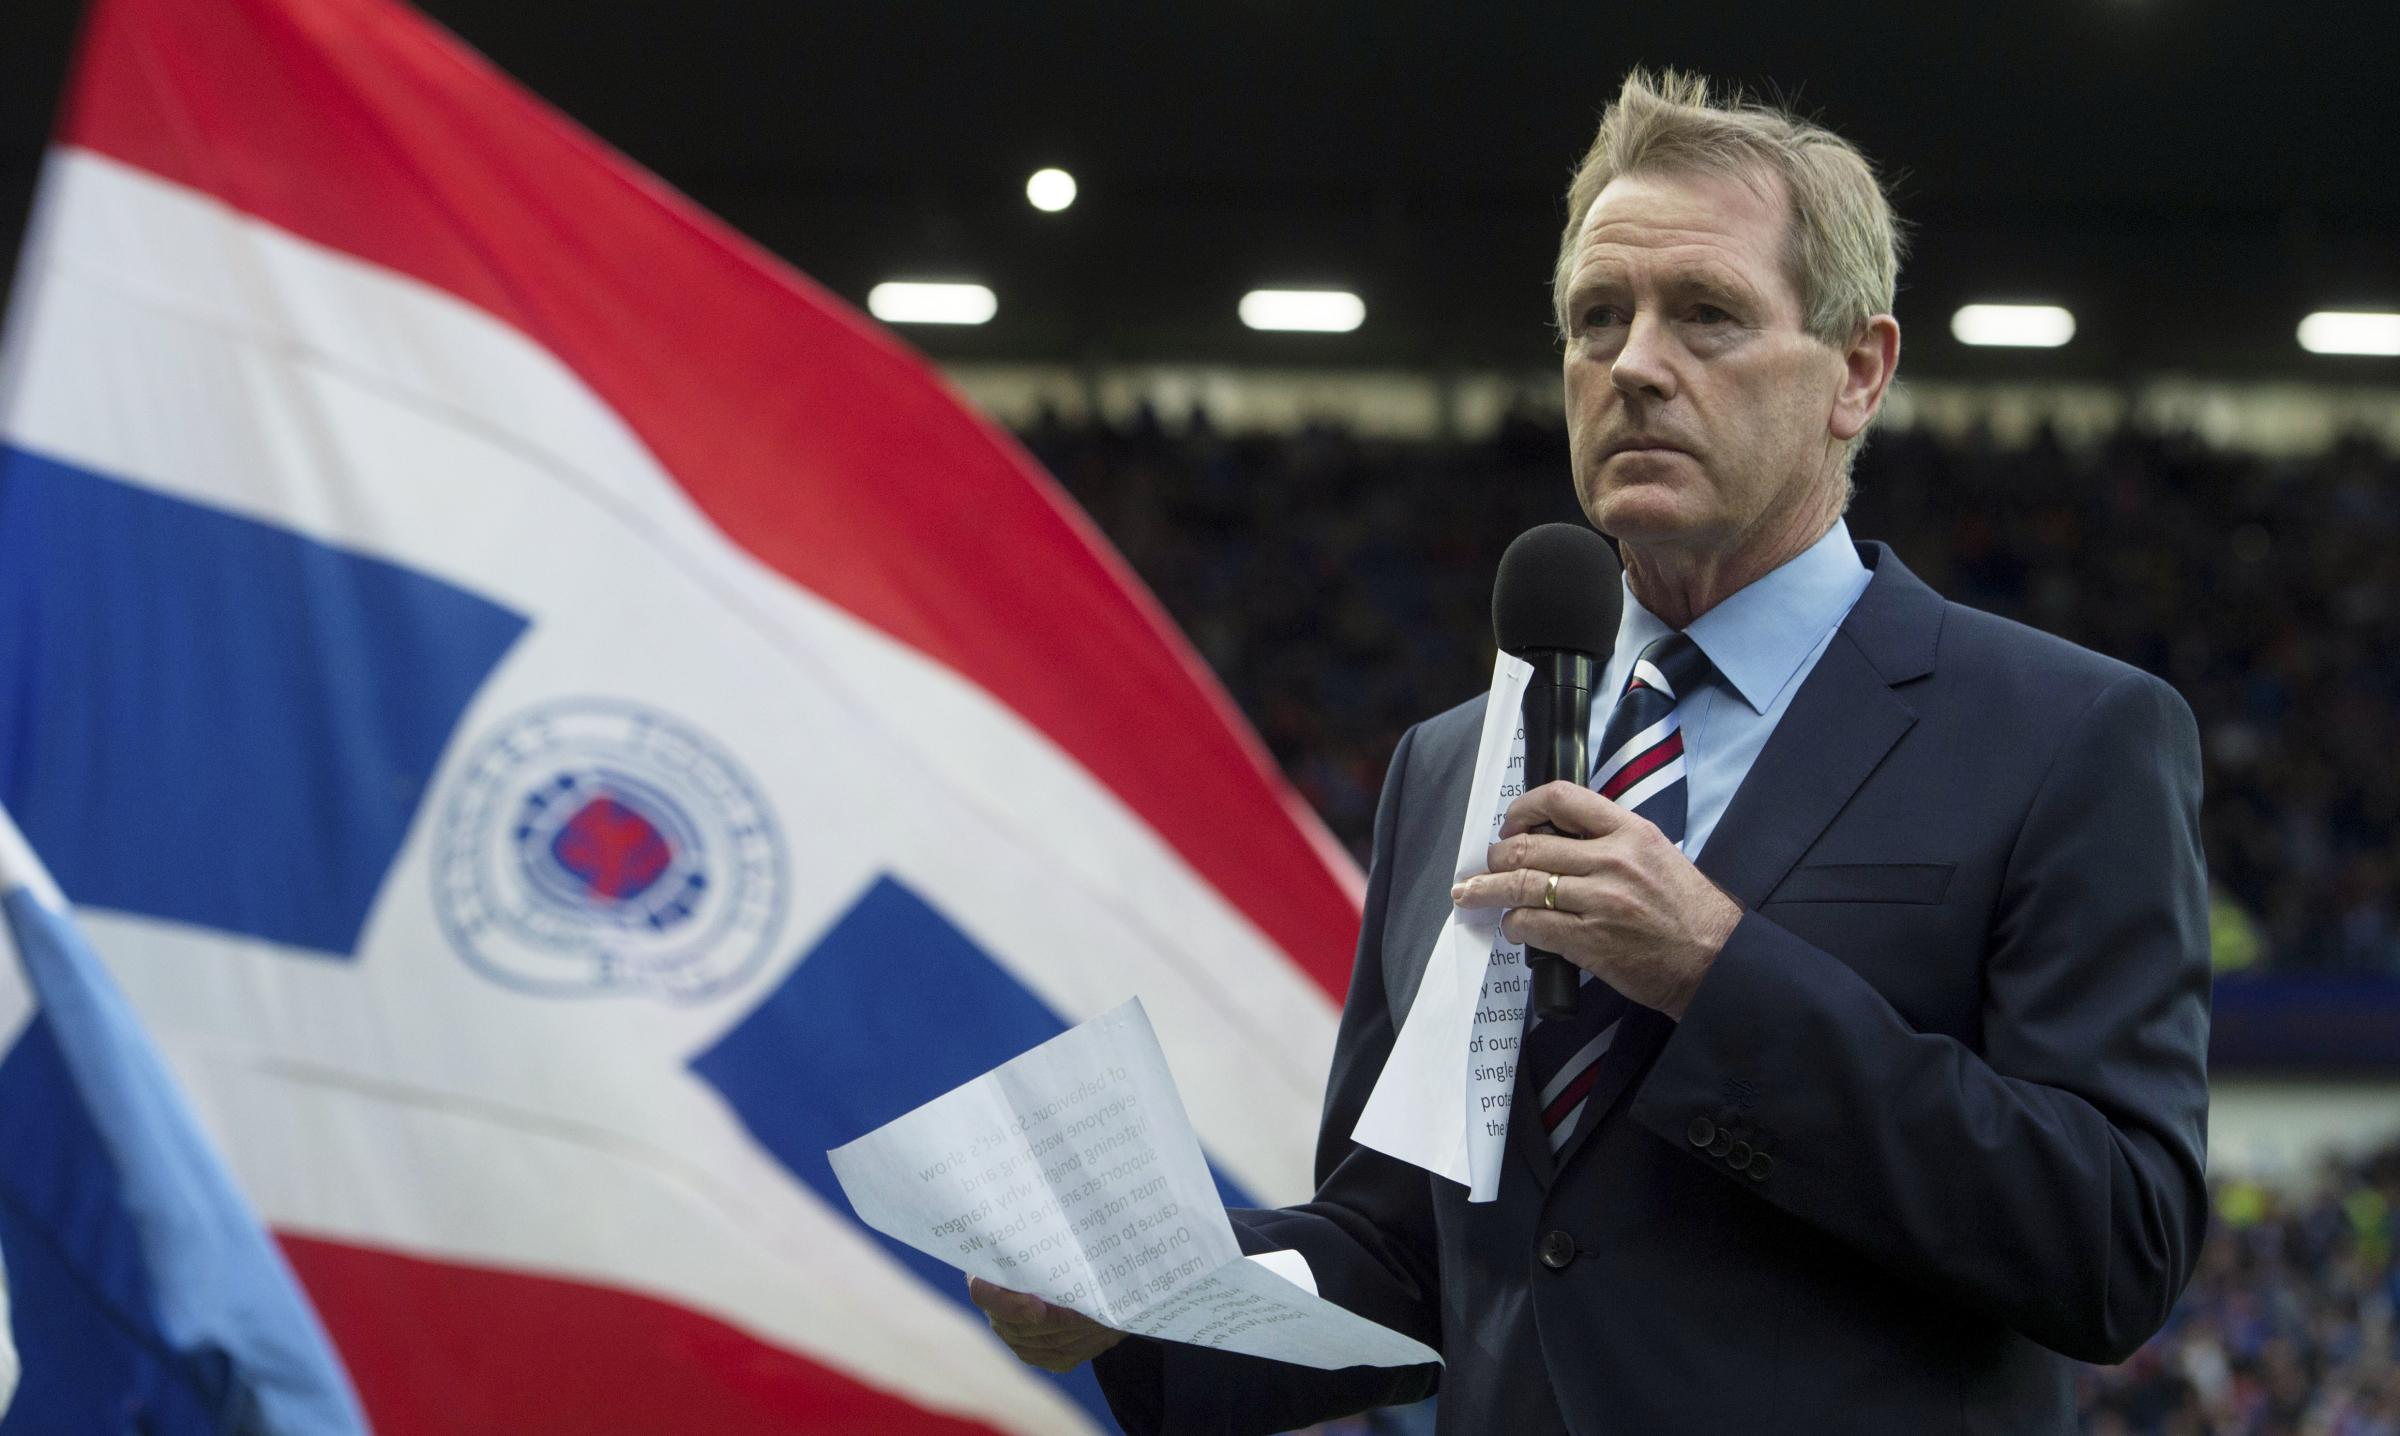 Rangers fans warned stay away if you can't be civilised